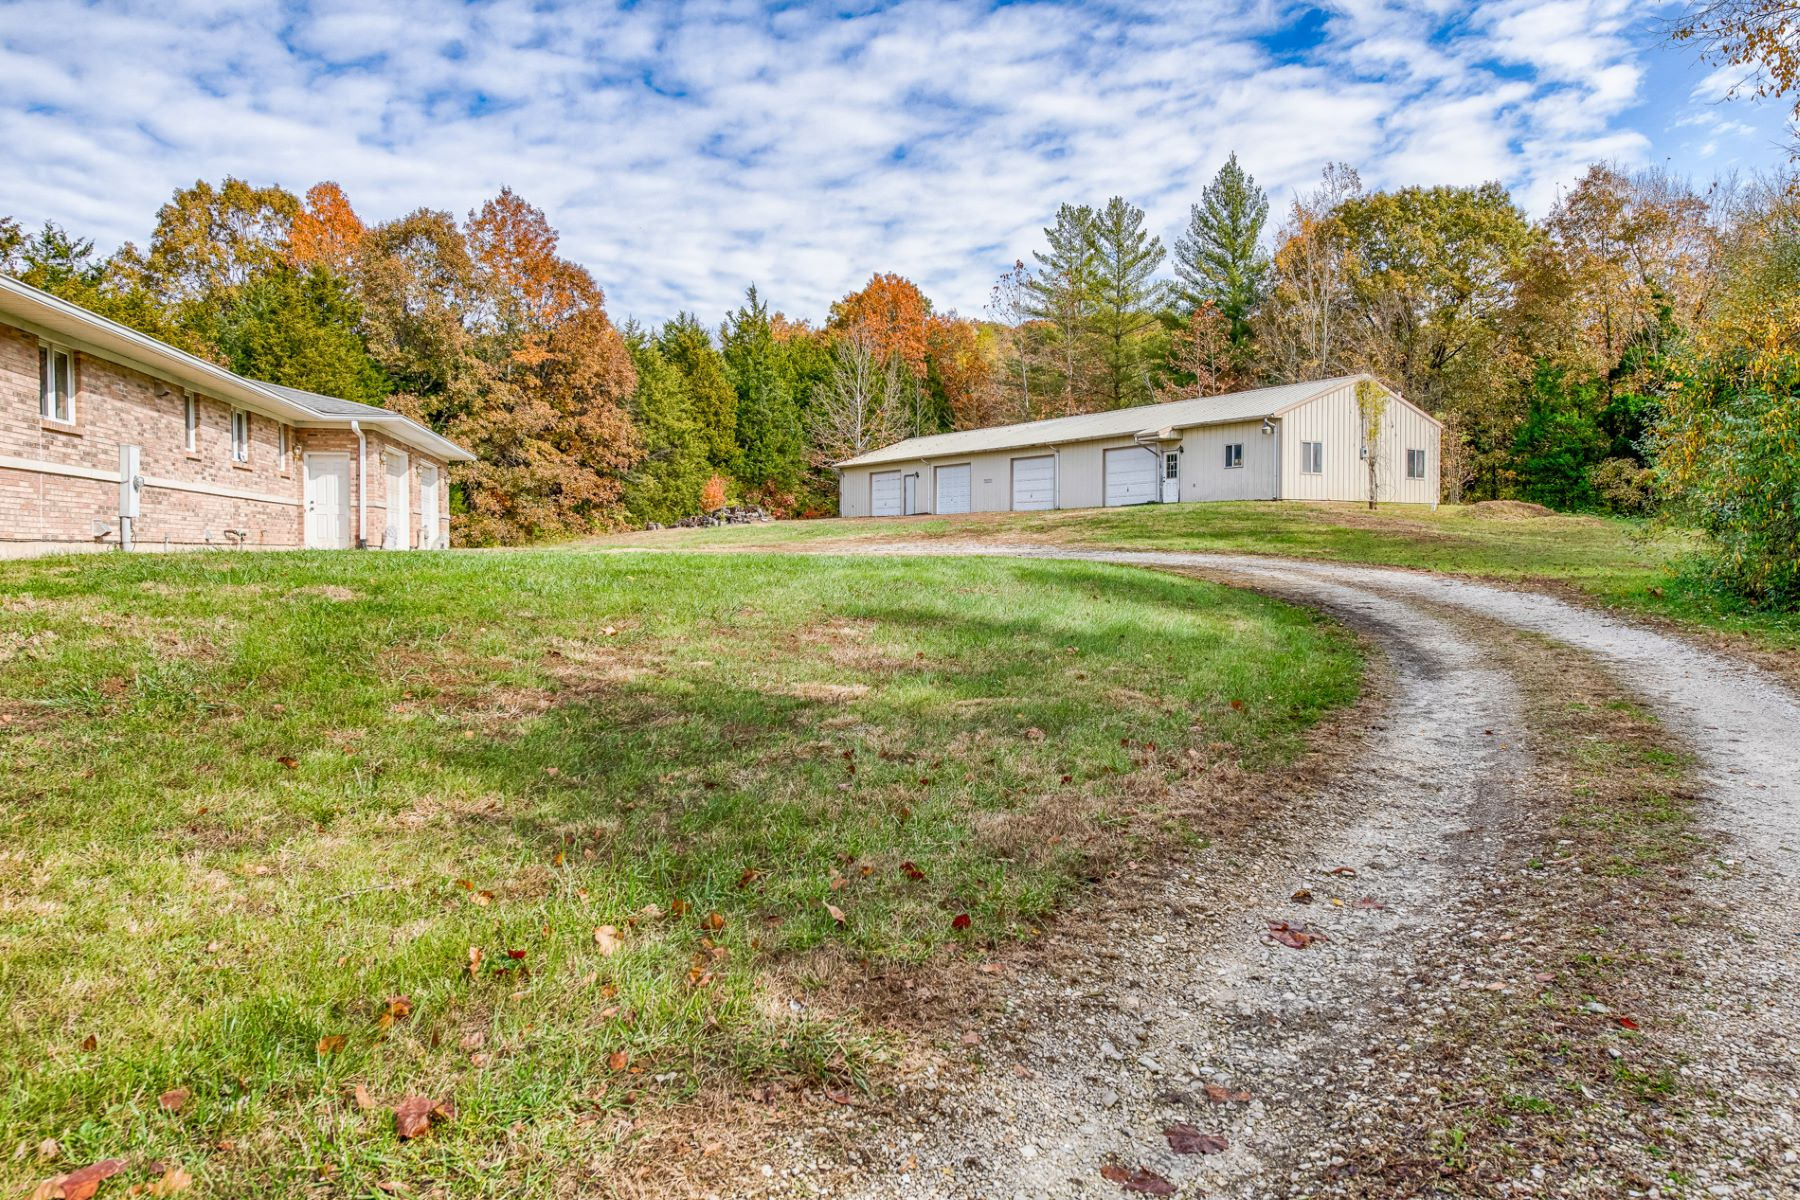 Additional photo for property listing at Windy Valley 7118 Windy Valley  Lane Pacific, Missouri 63069 United States